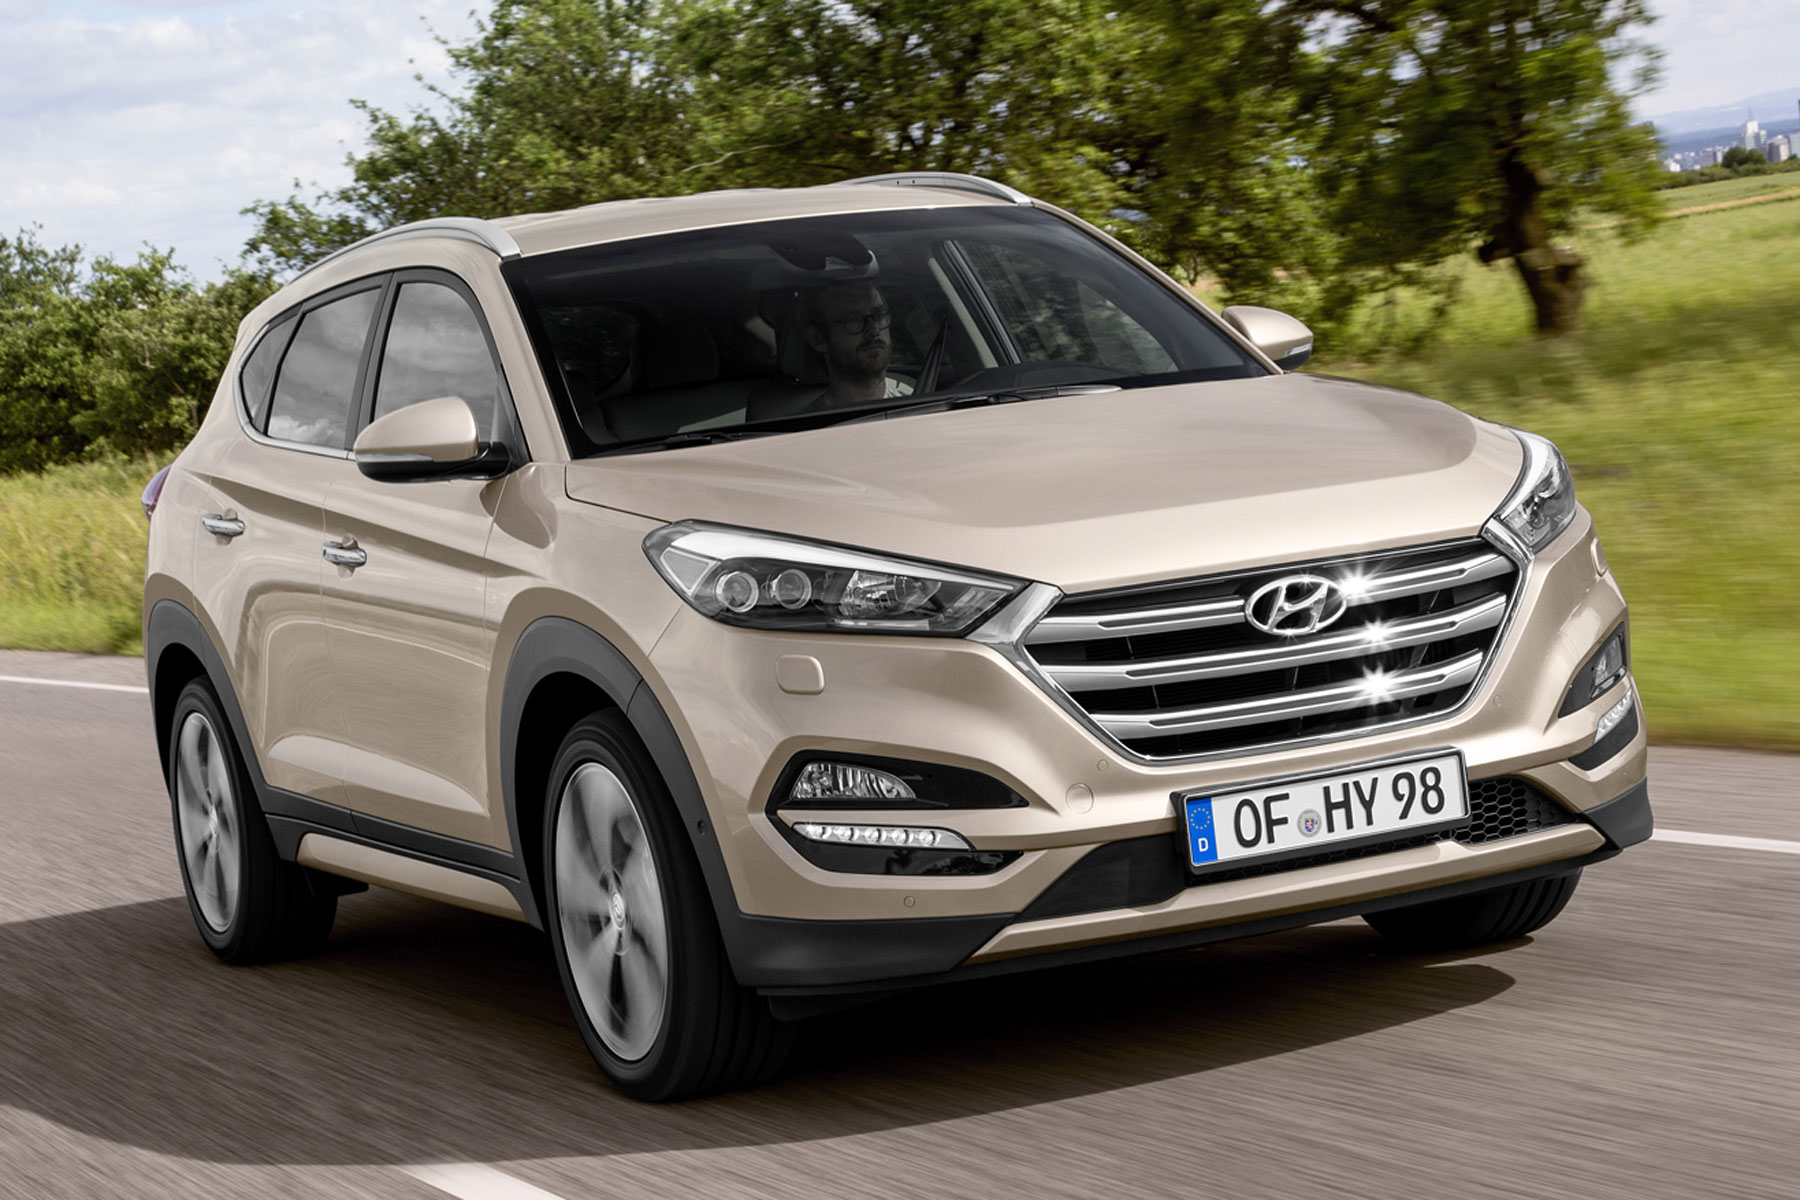 Hyundai Tucson: On the road